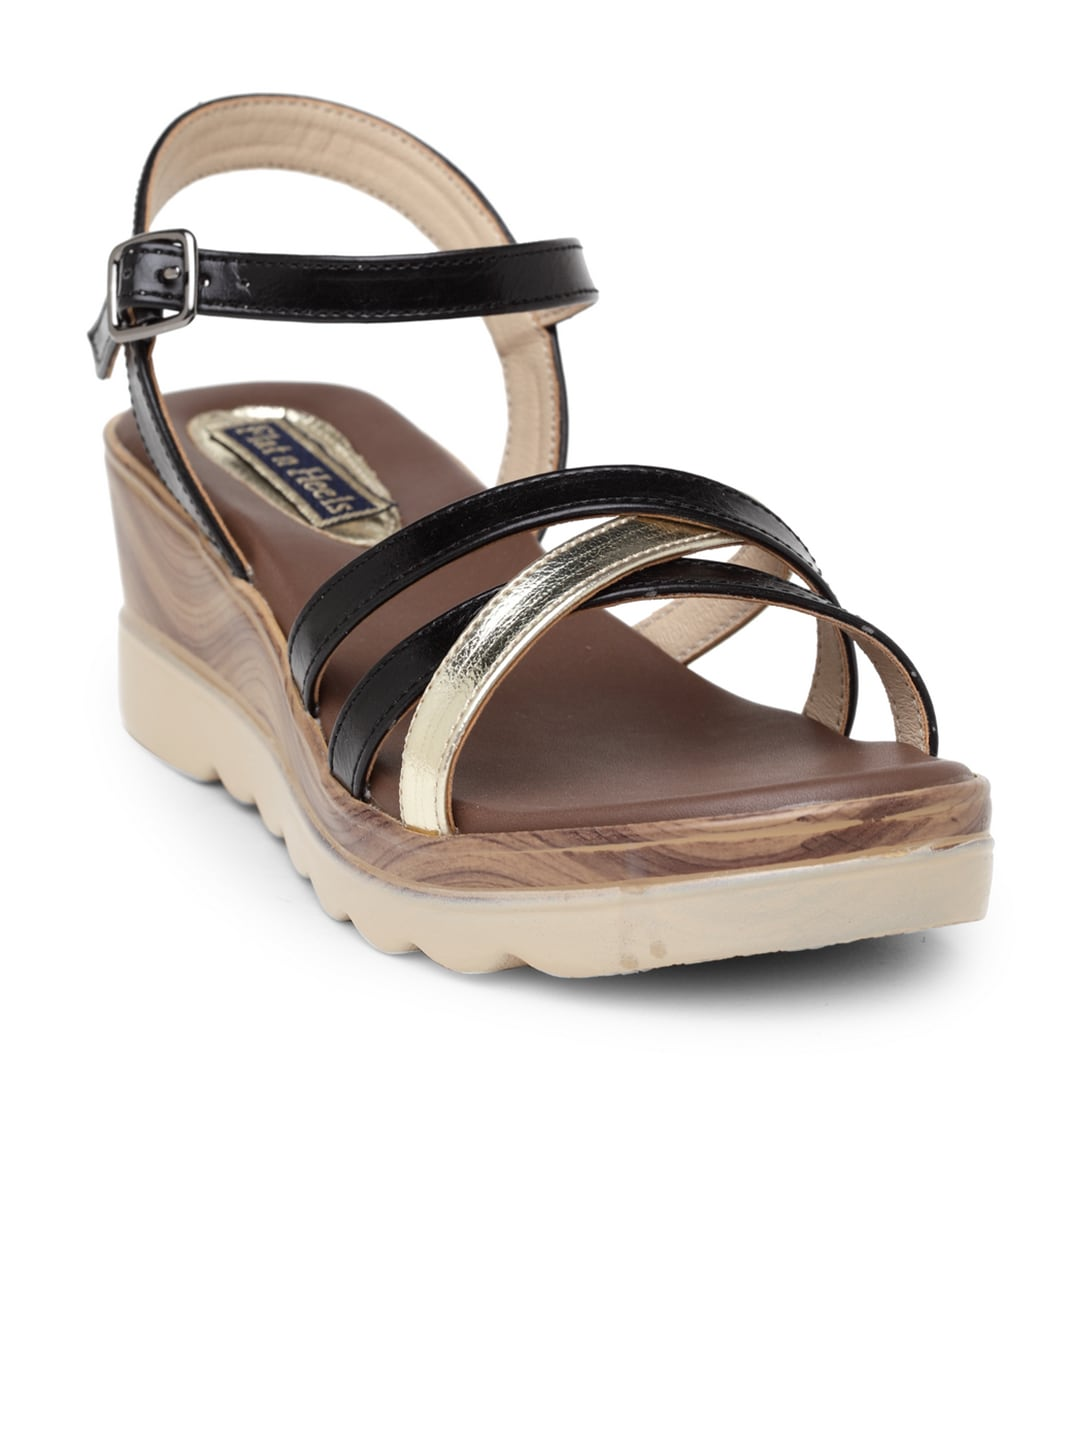 7555d61fa479 Toe Shoes - Buy Toe Shoes online in India